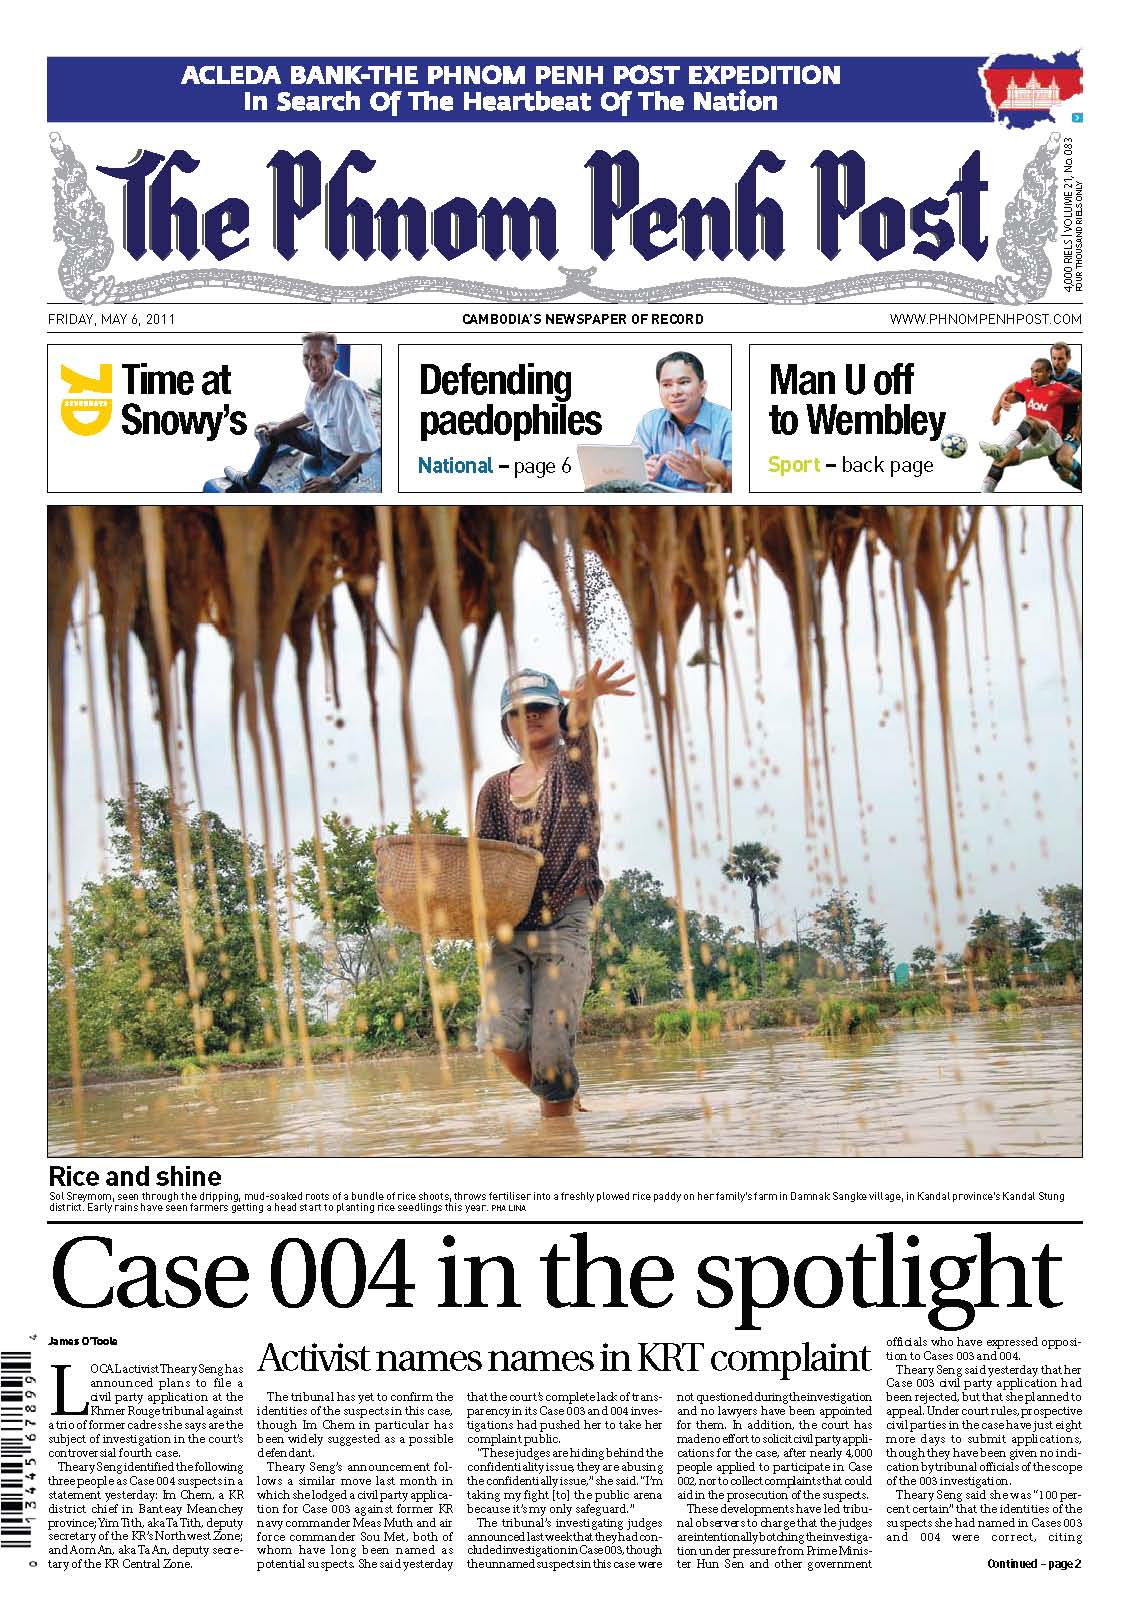 Phnom Penh Post, Case 004, 6 May 2011